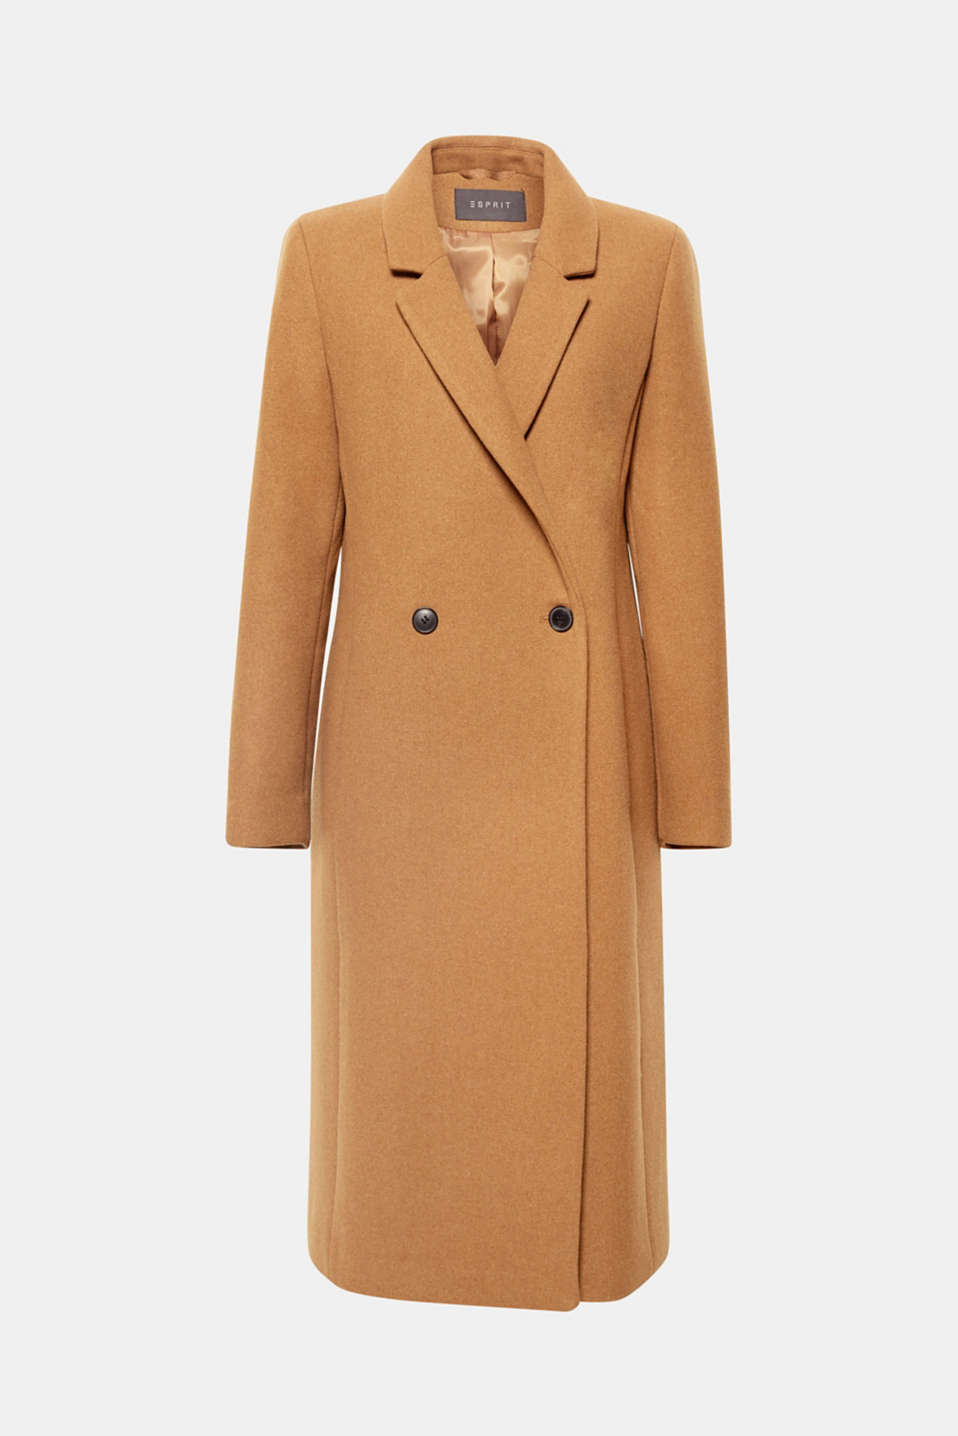 This premium, blended wool coat with modern, two-button fastening is wonderfully warming and super chic for colder days.